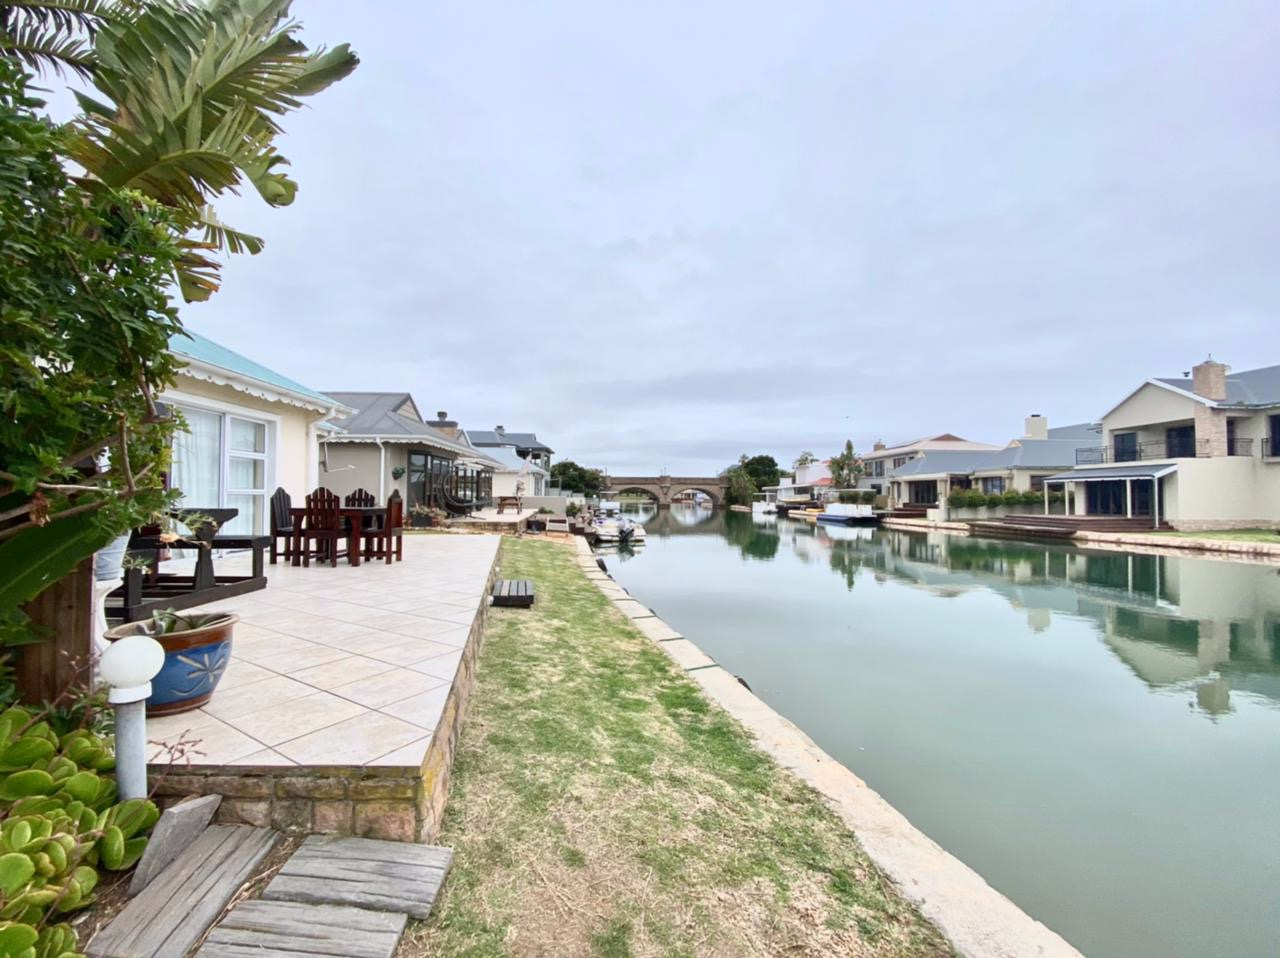 2 Bedroom House For Sale in Marina Martinique